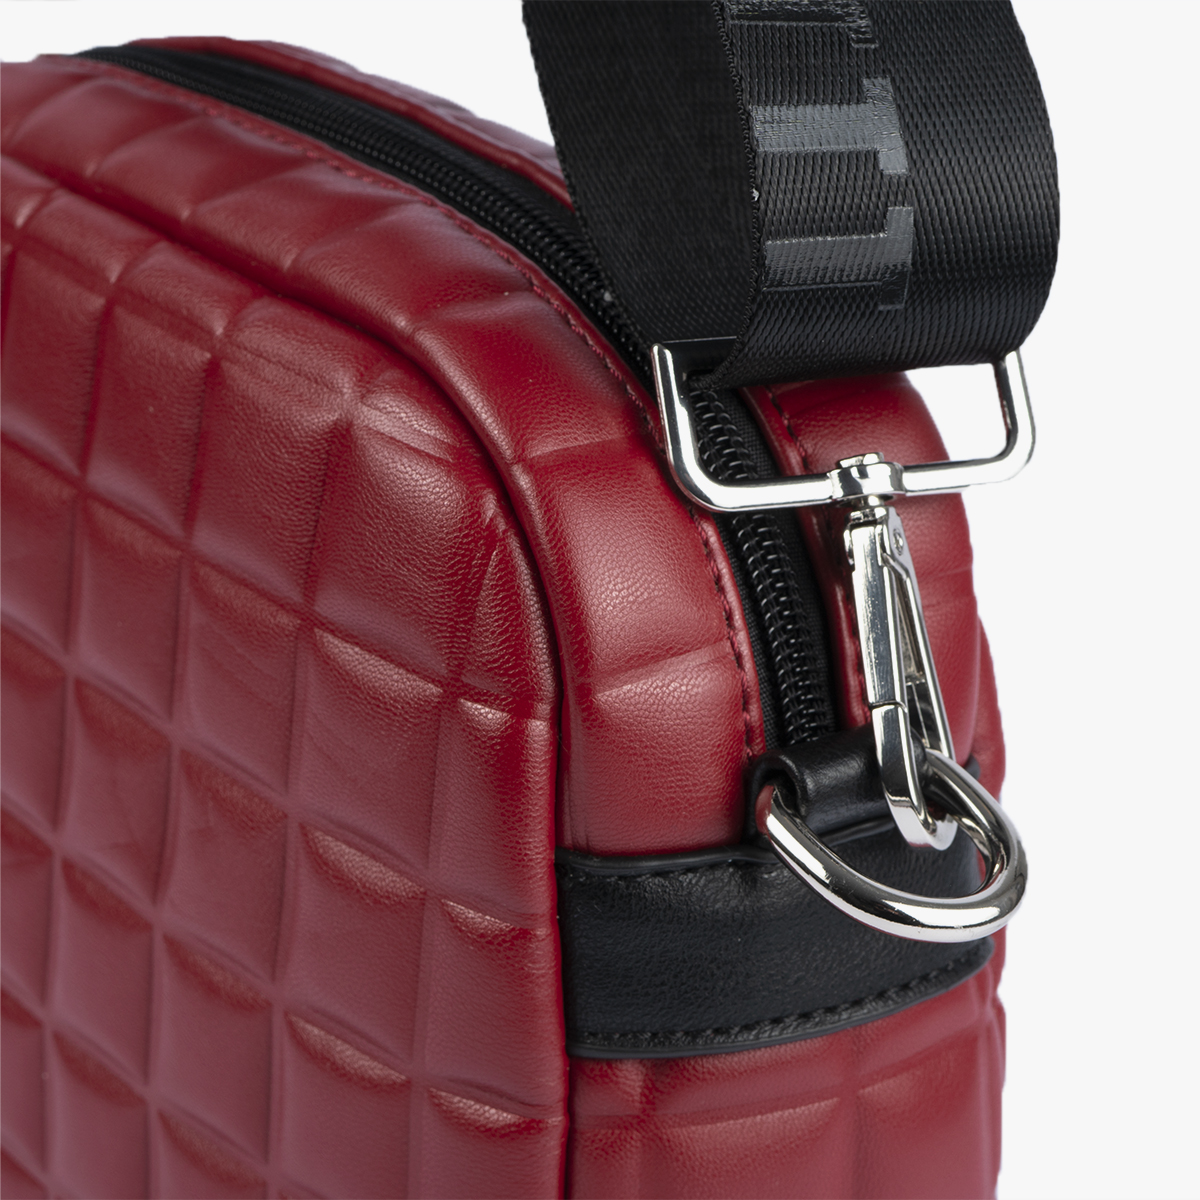 26129 square cherry kid negro detalle